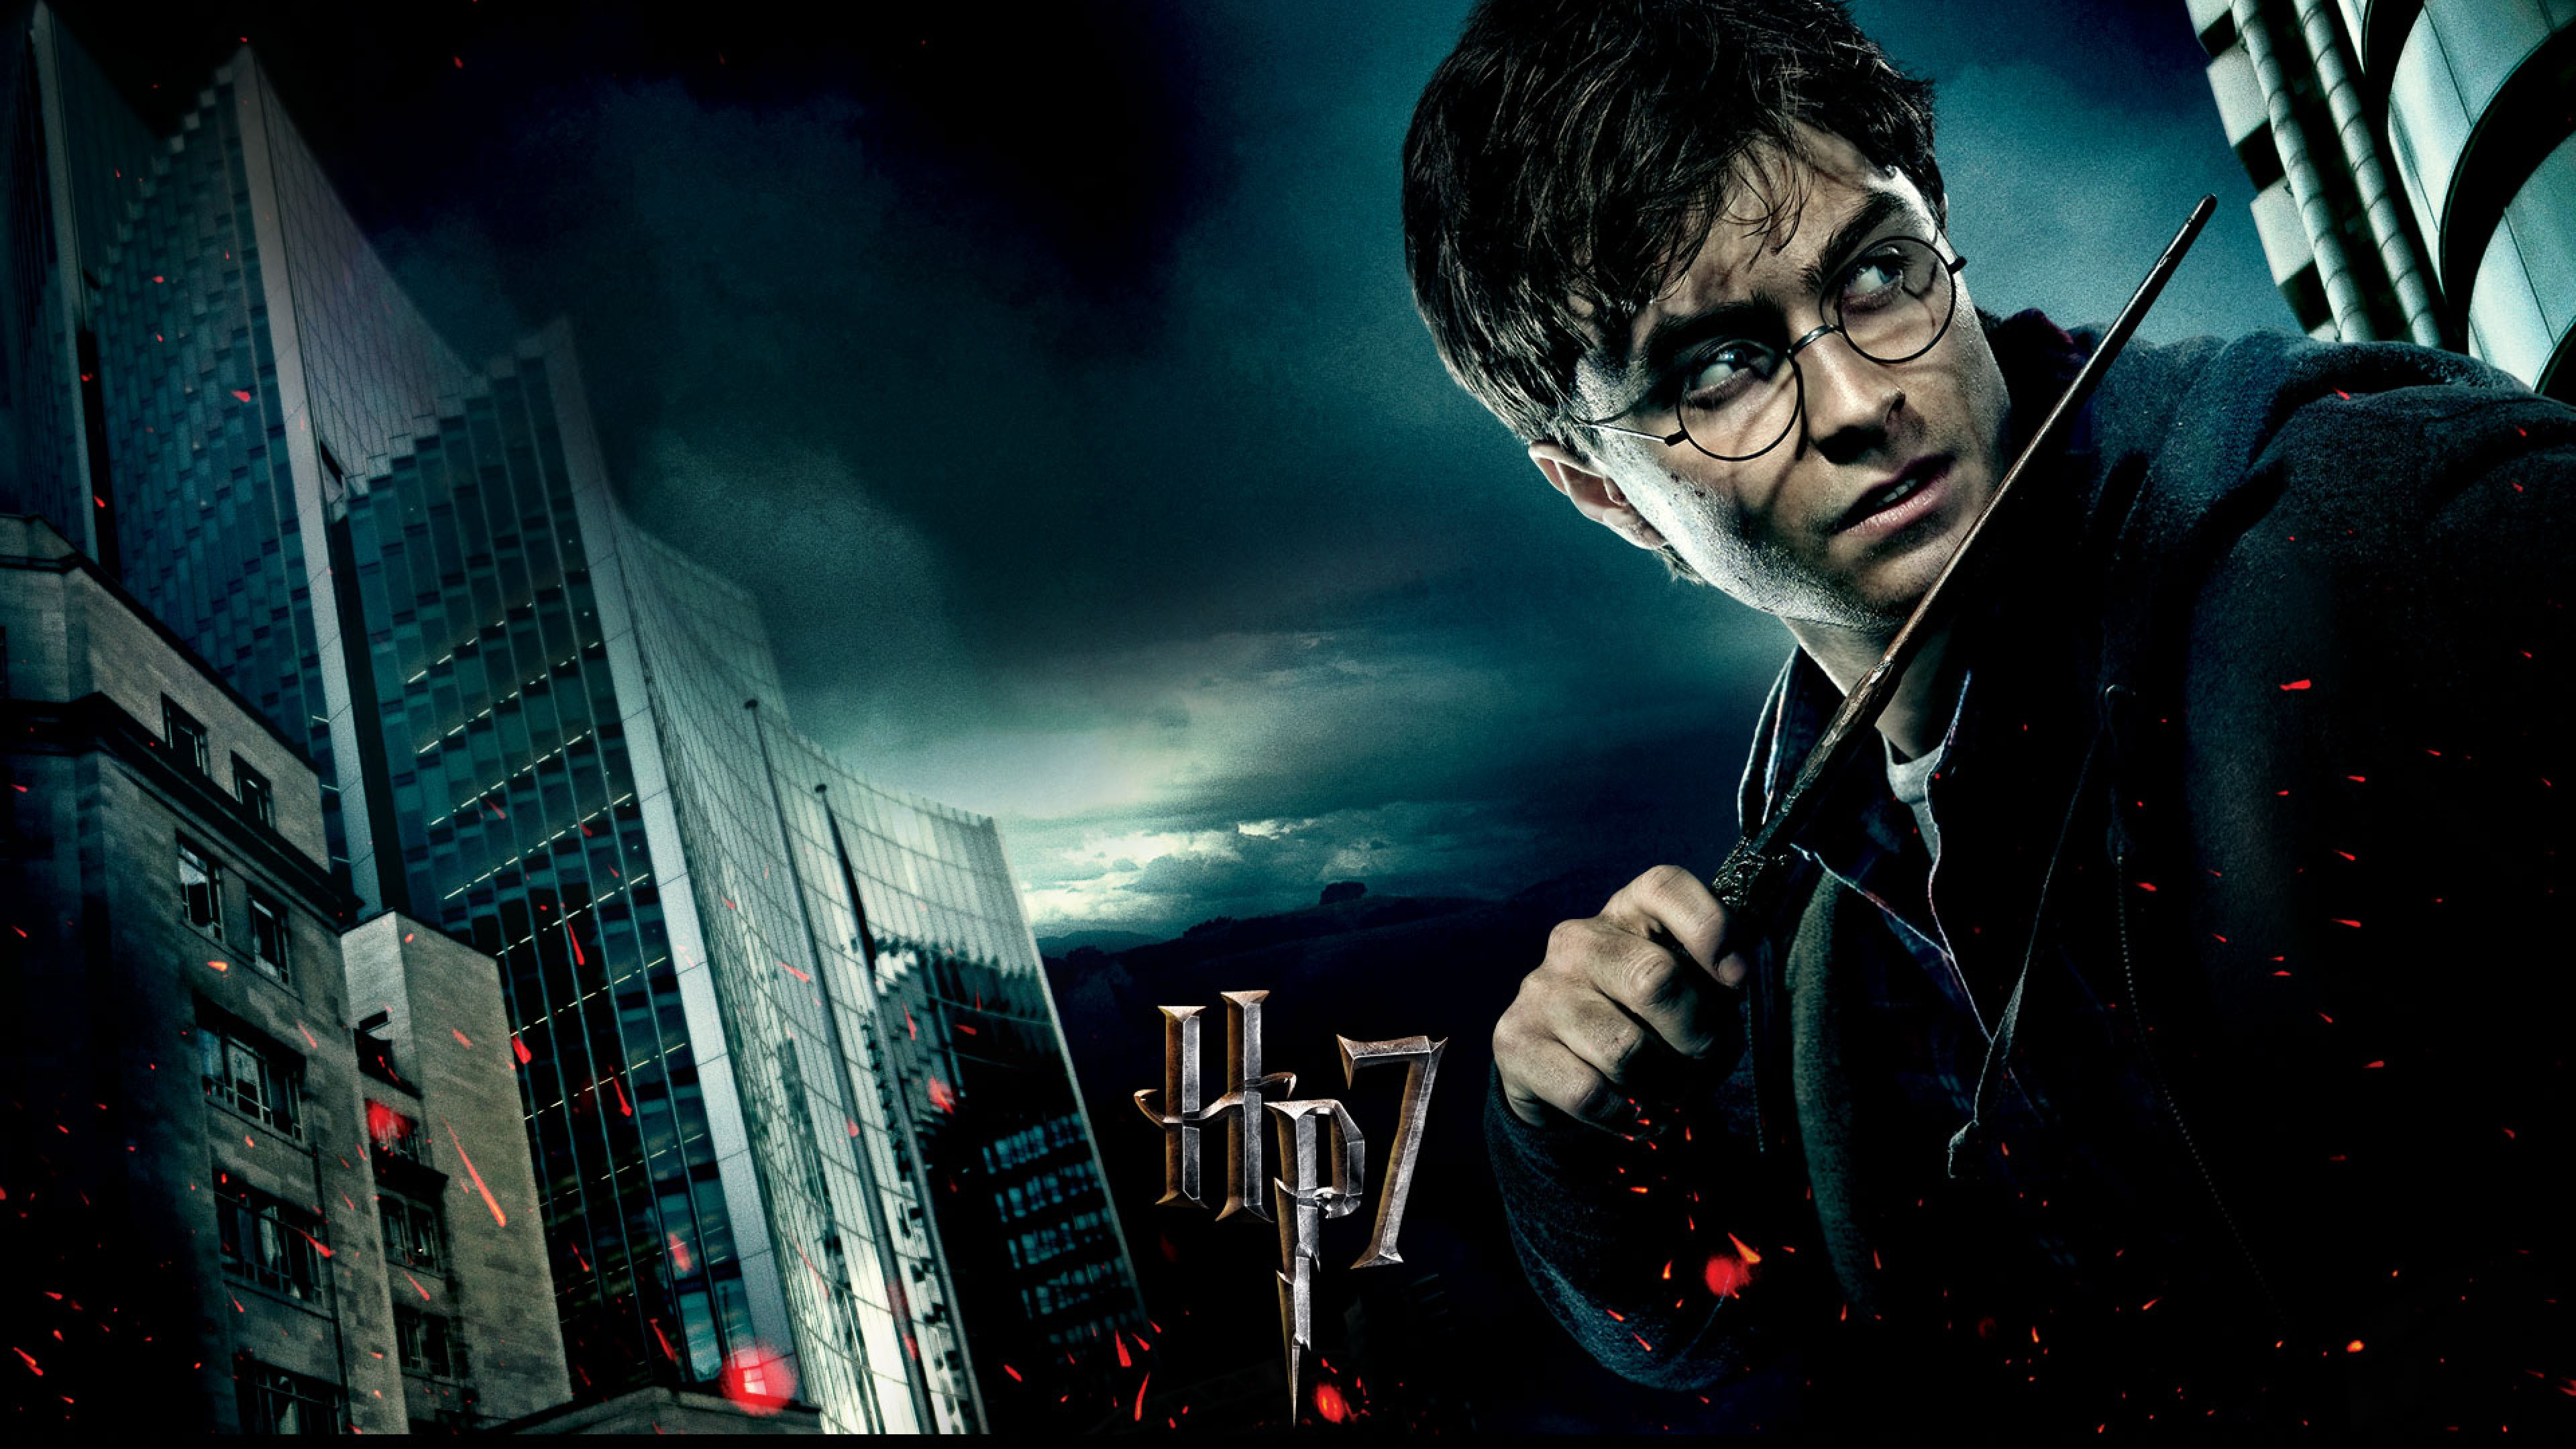 Harry Potter And Deathly Hallows Wallpapers for Desktop and